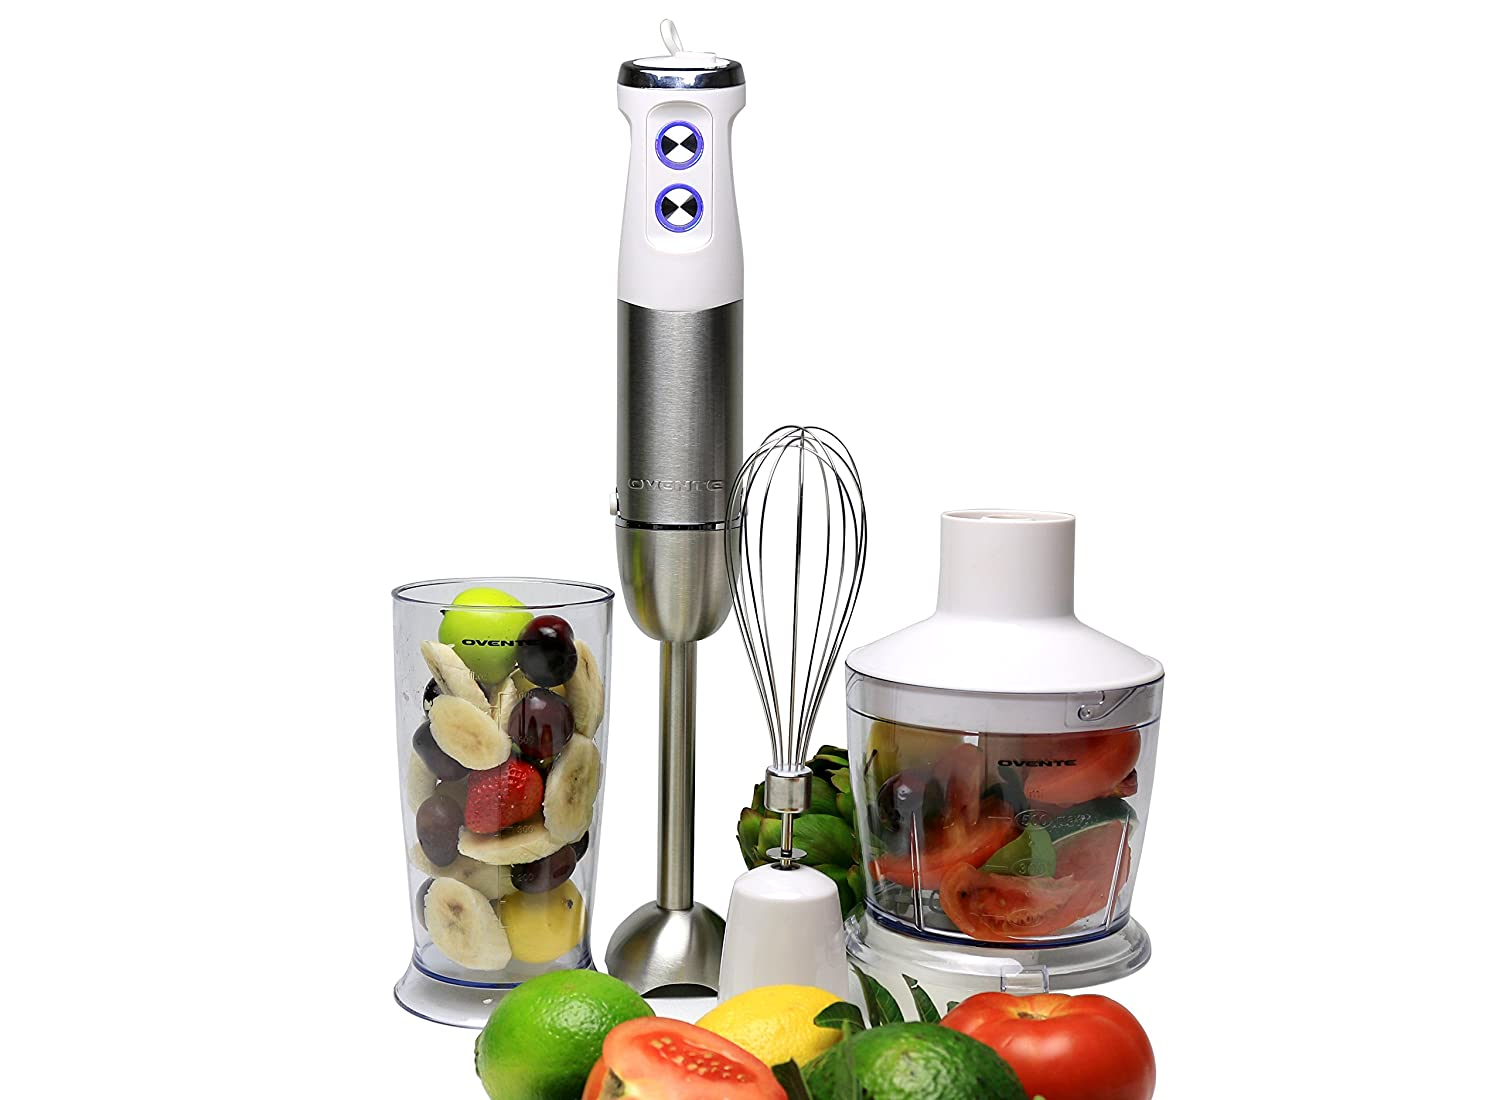 Ovente Multi-Purpose Immersion Hand Blender Set – 500-Watts, Variable 6-Speed Control – Stainless Steel – Includes Food Chopper, Egg Whisk, and BPA-Free Beaker (600ml) – White (HS685W)